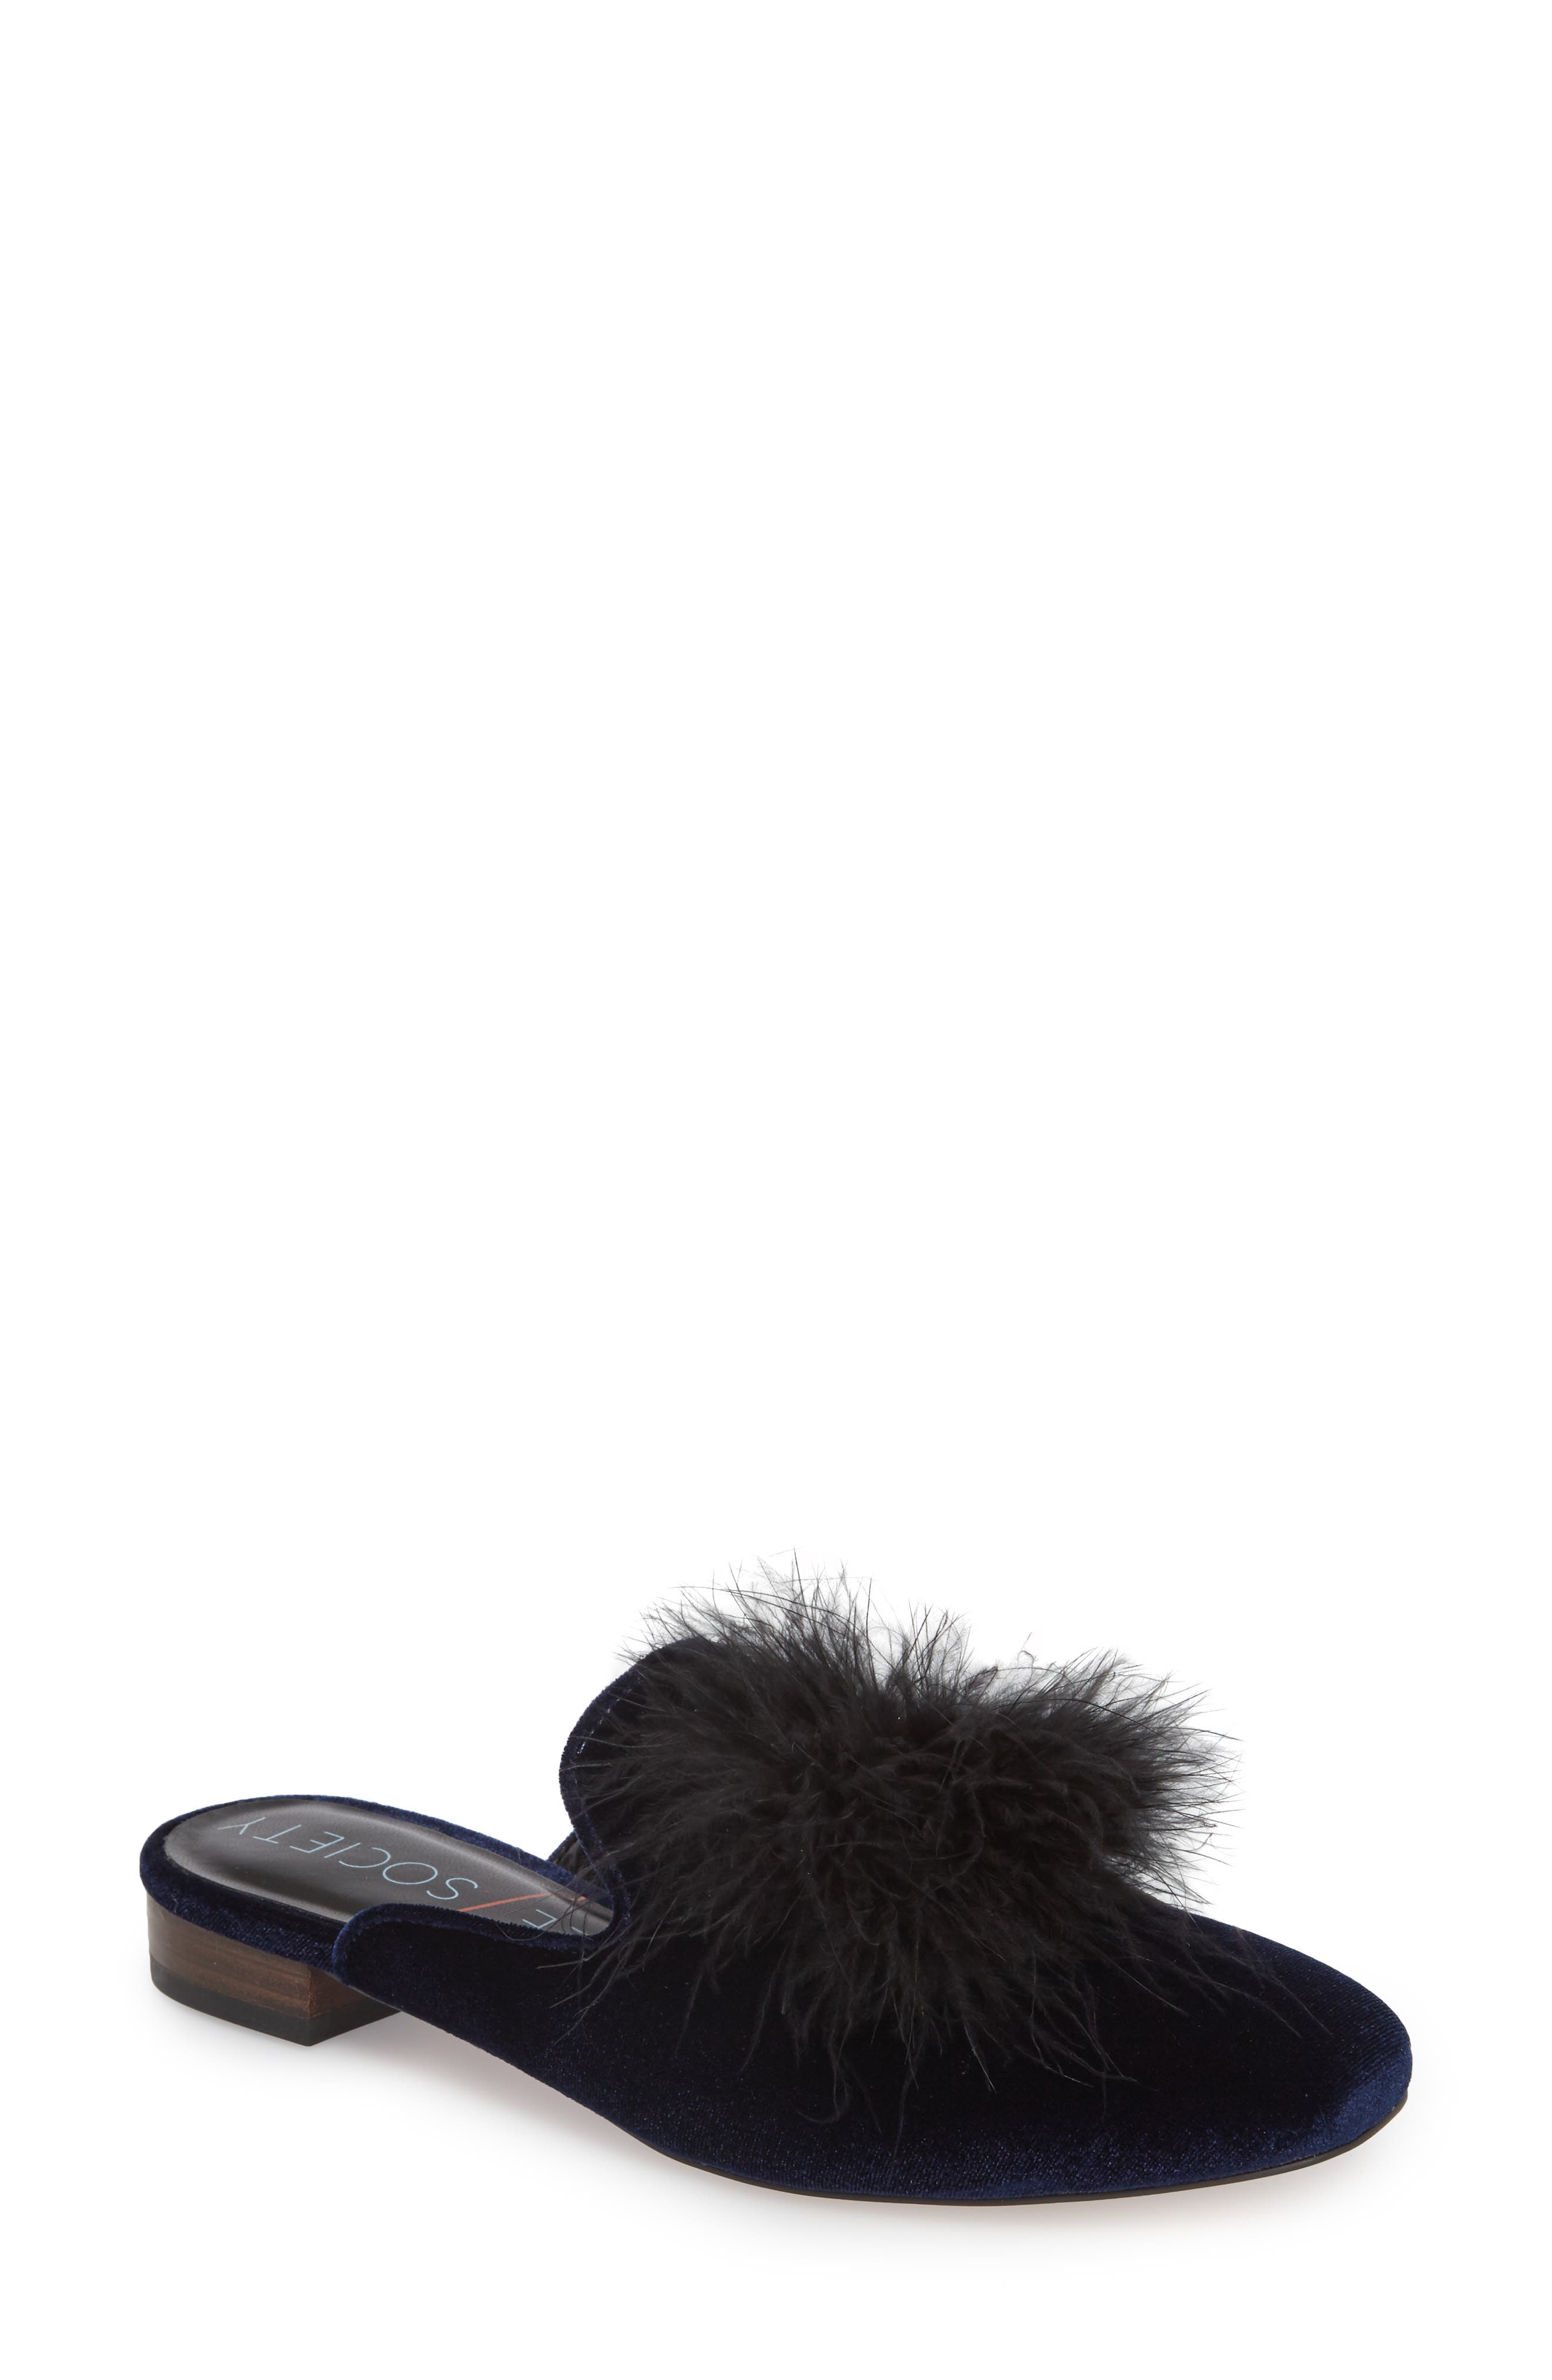 Cleona Feather Pompom Mule,                         Main,                         color, Navy